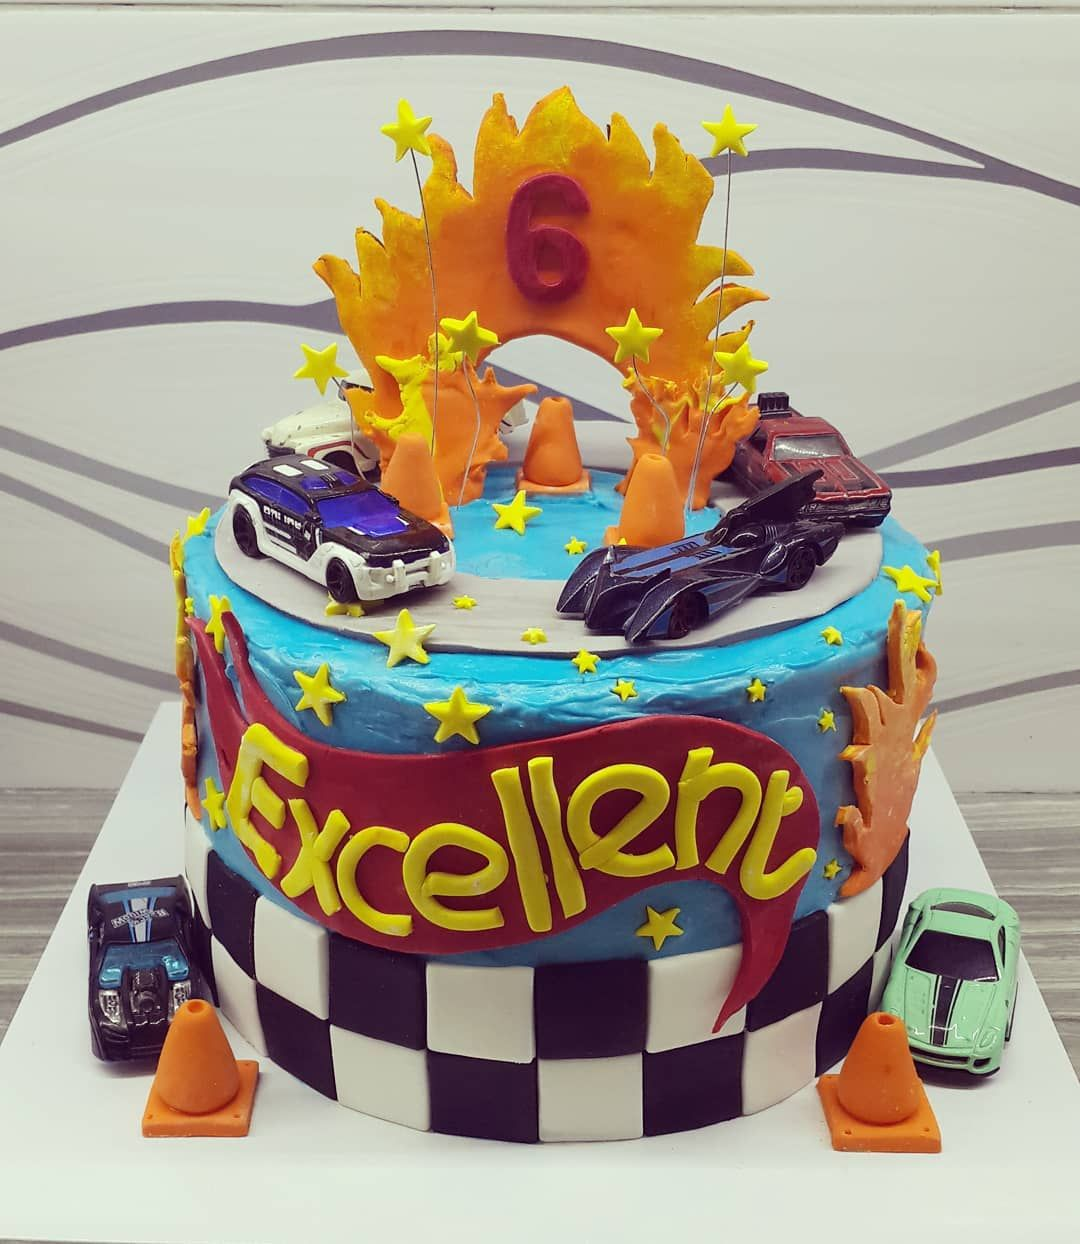 Hotwheels Birthday Cake For Excellent S 6th Birthday Happybirthday Birthdaycakemalang Cakemalang Kueulangtahun